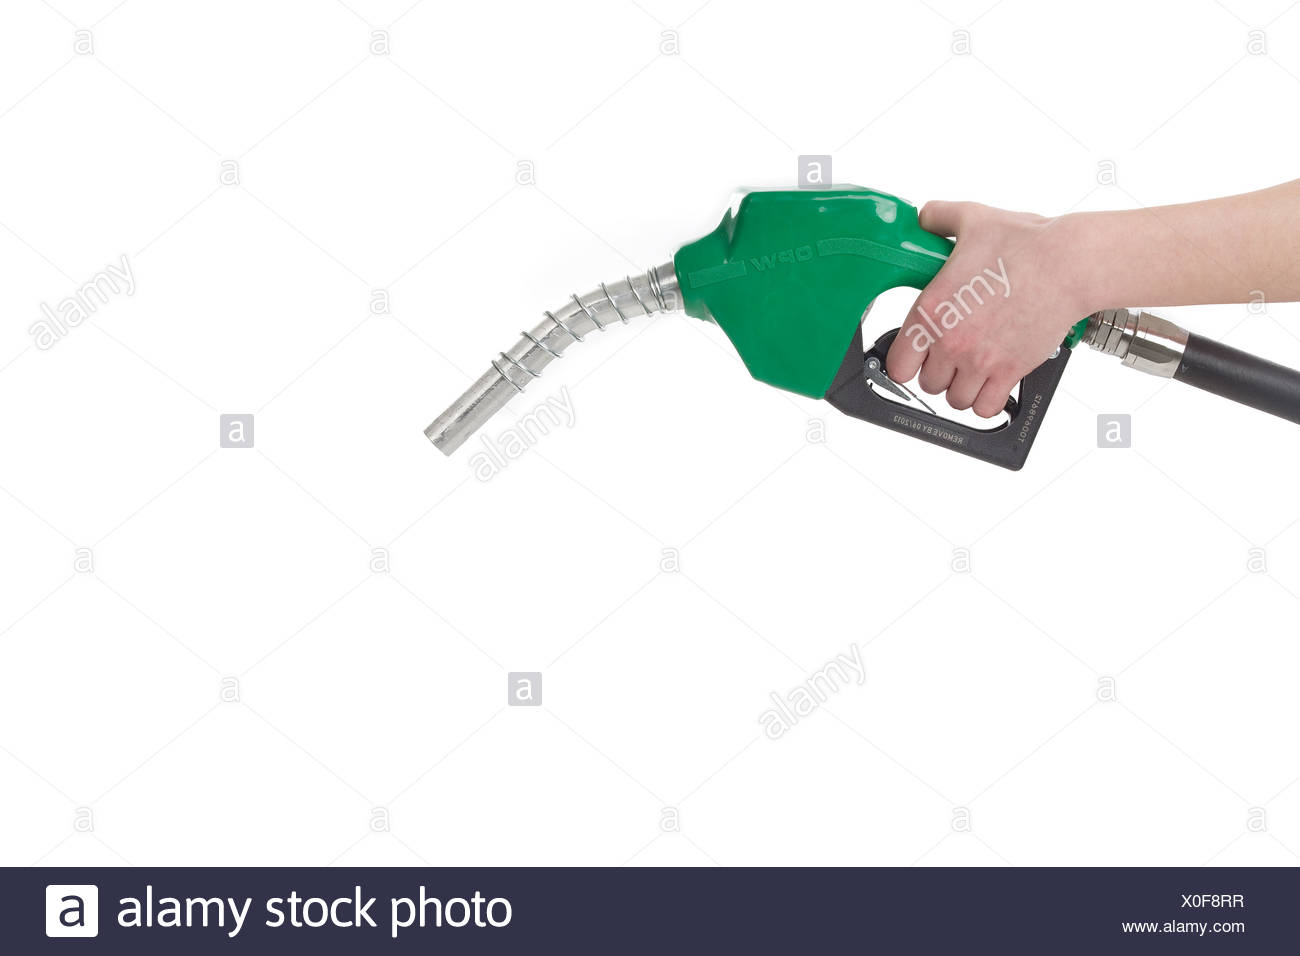 A hand with a gasoline nozzle, Winnipeg, Manitoba - Stock Image